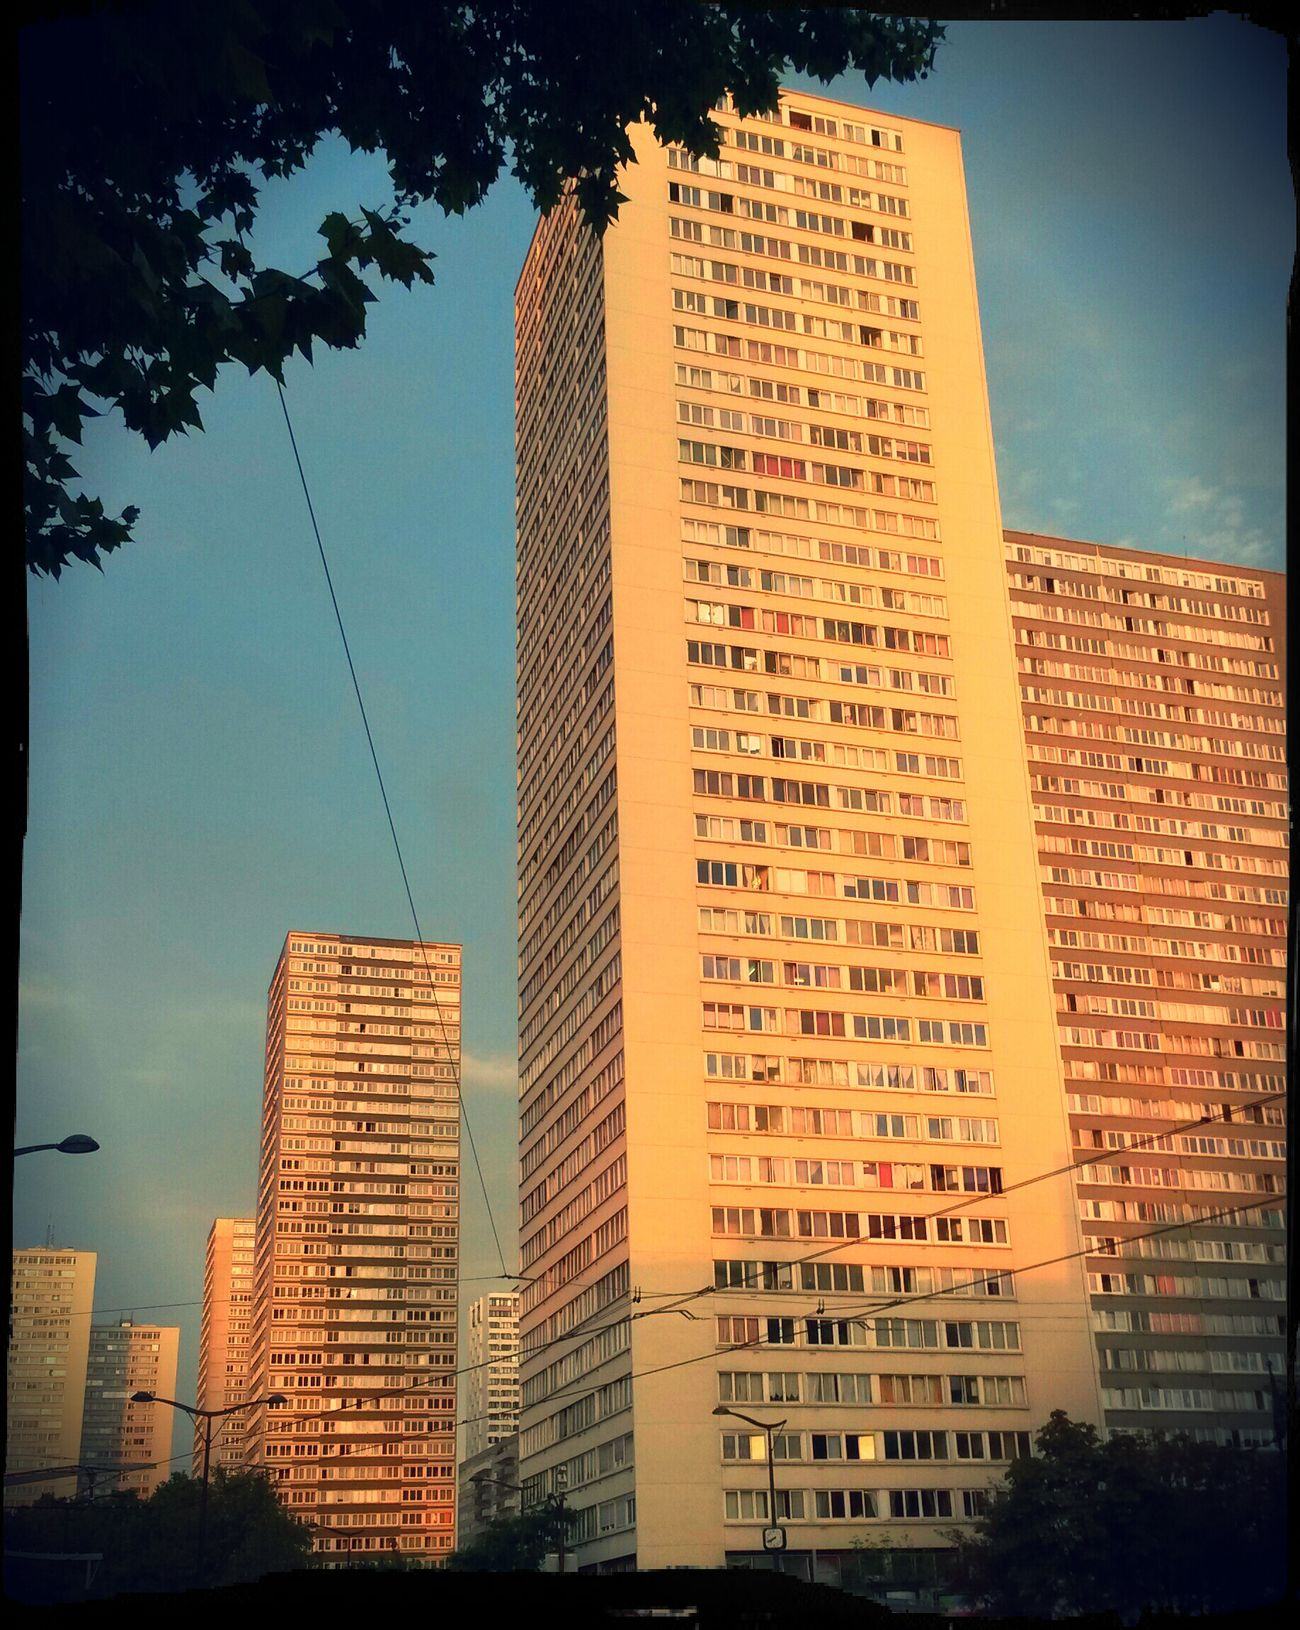 Morning Going To School Towers 13eme